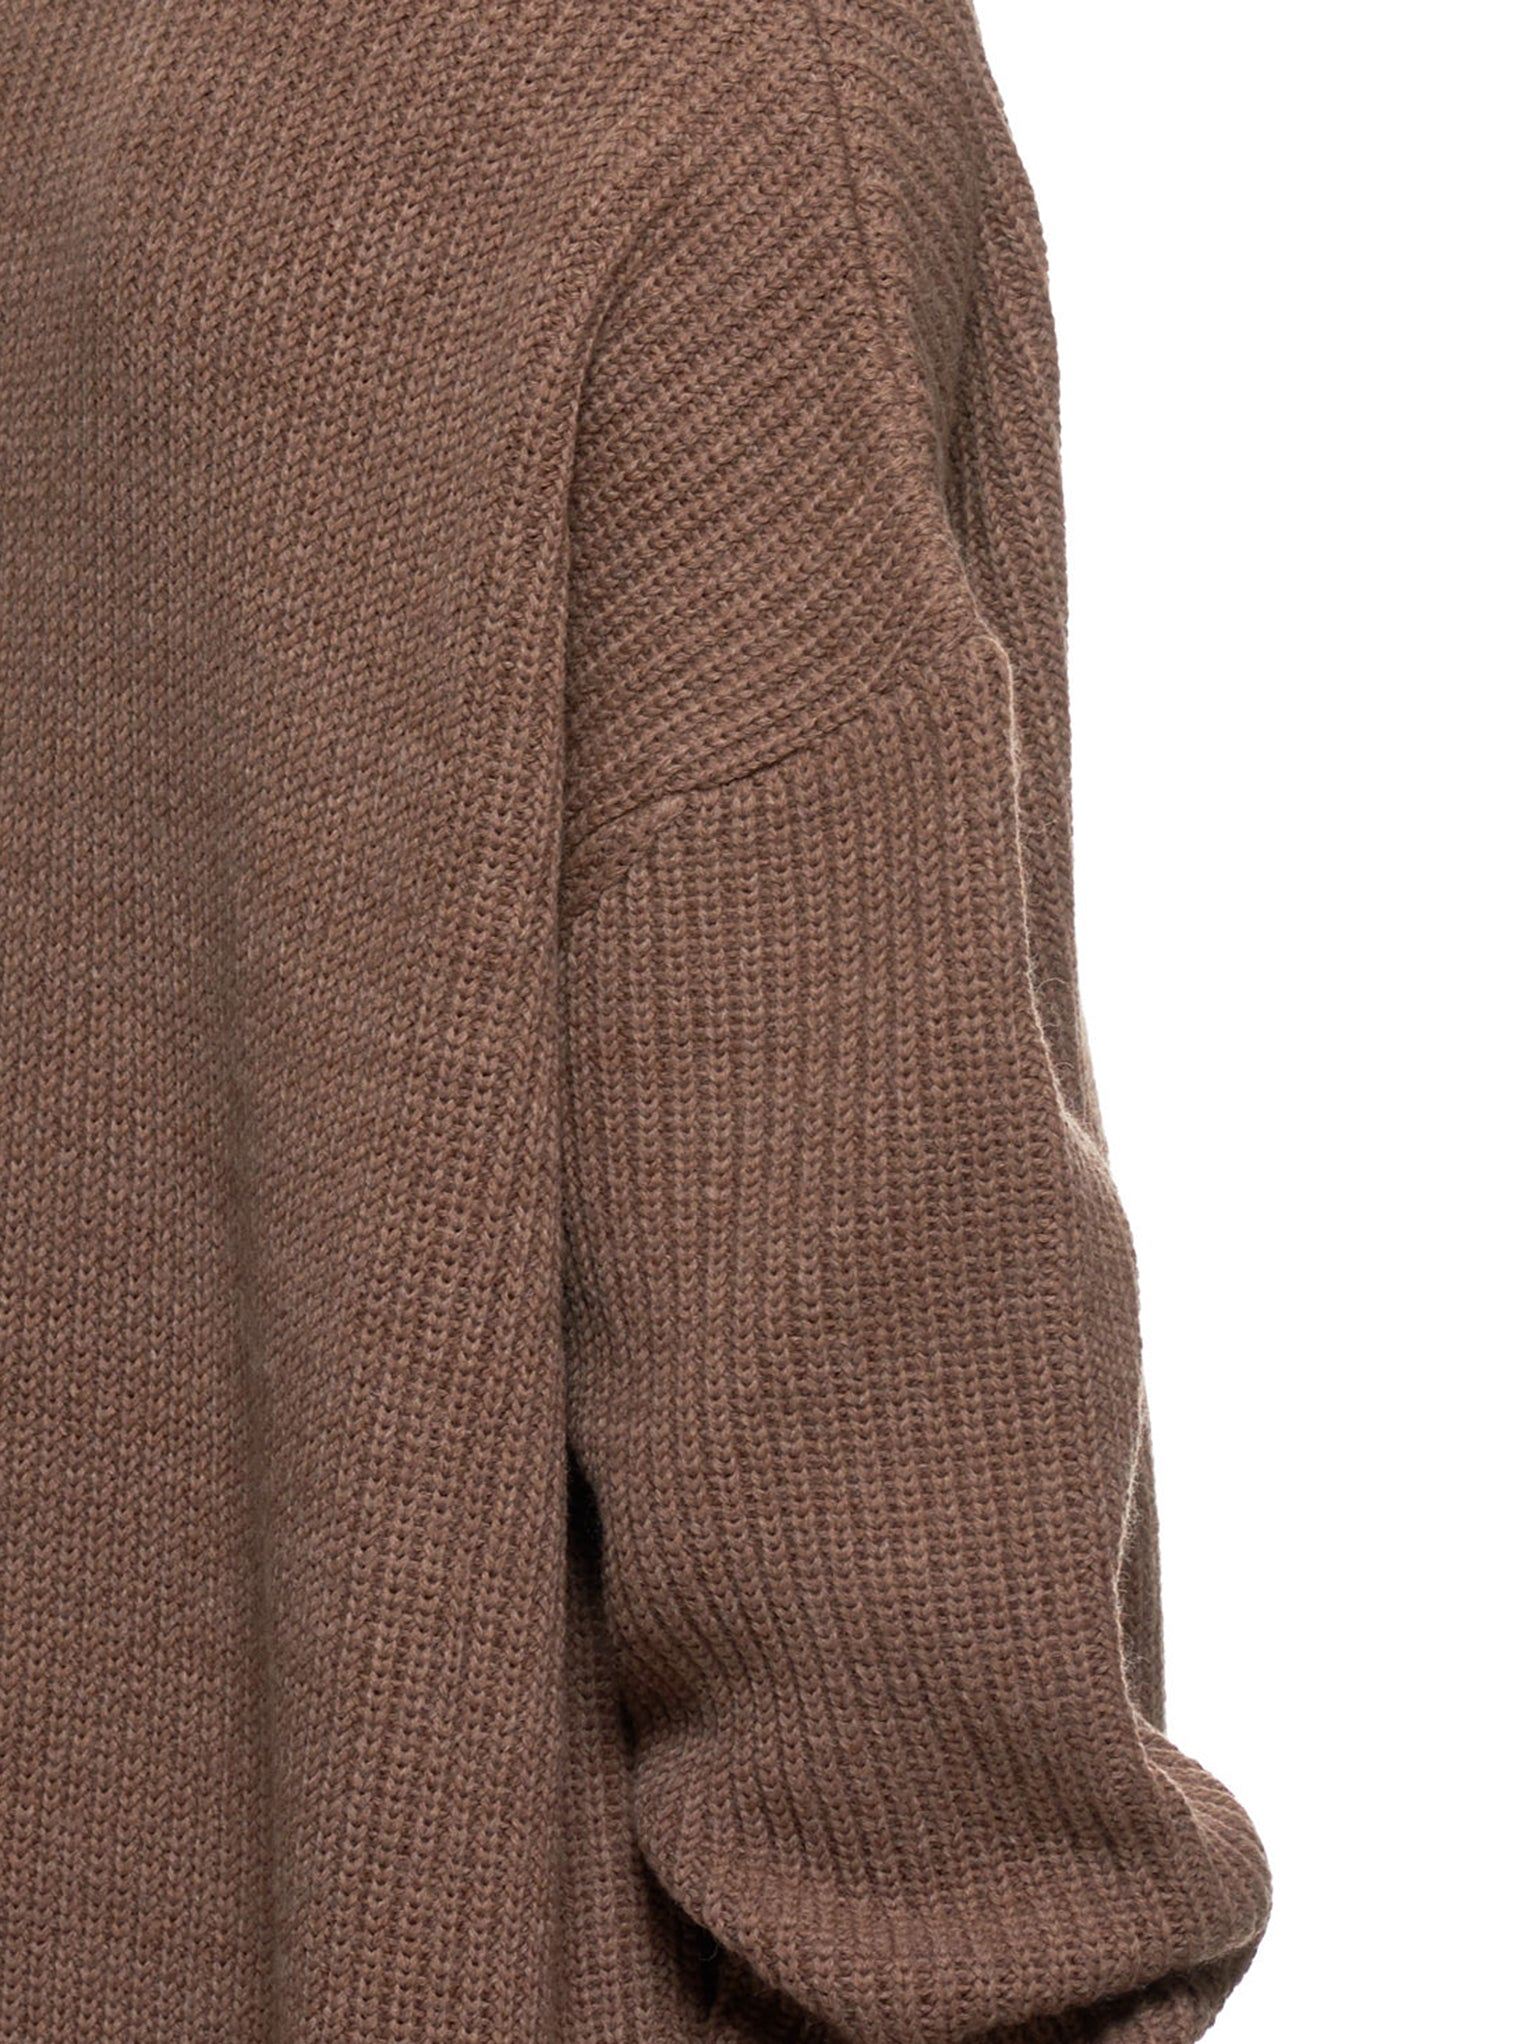 John Lawrence Sullivan Sweater | H.Lorenzo Detail 1